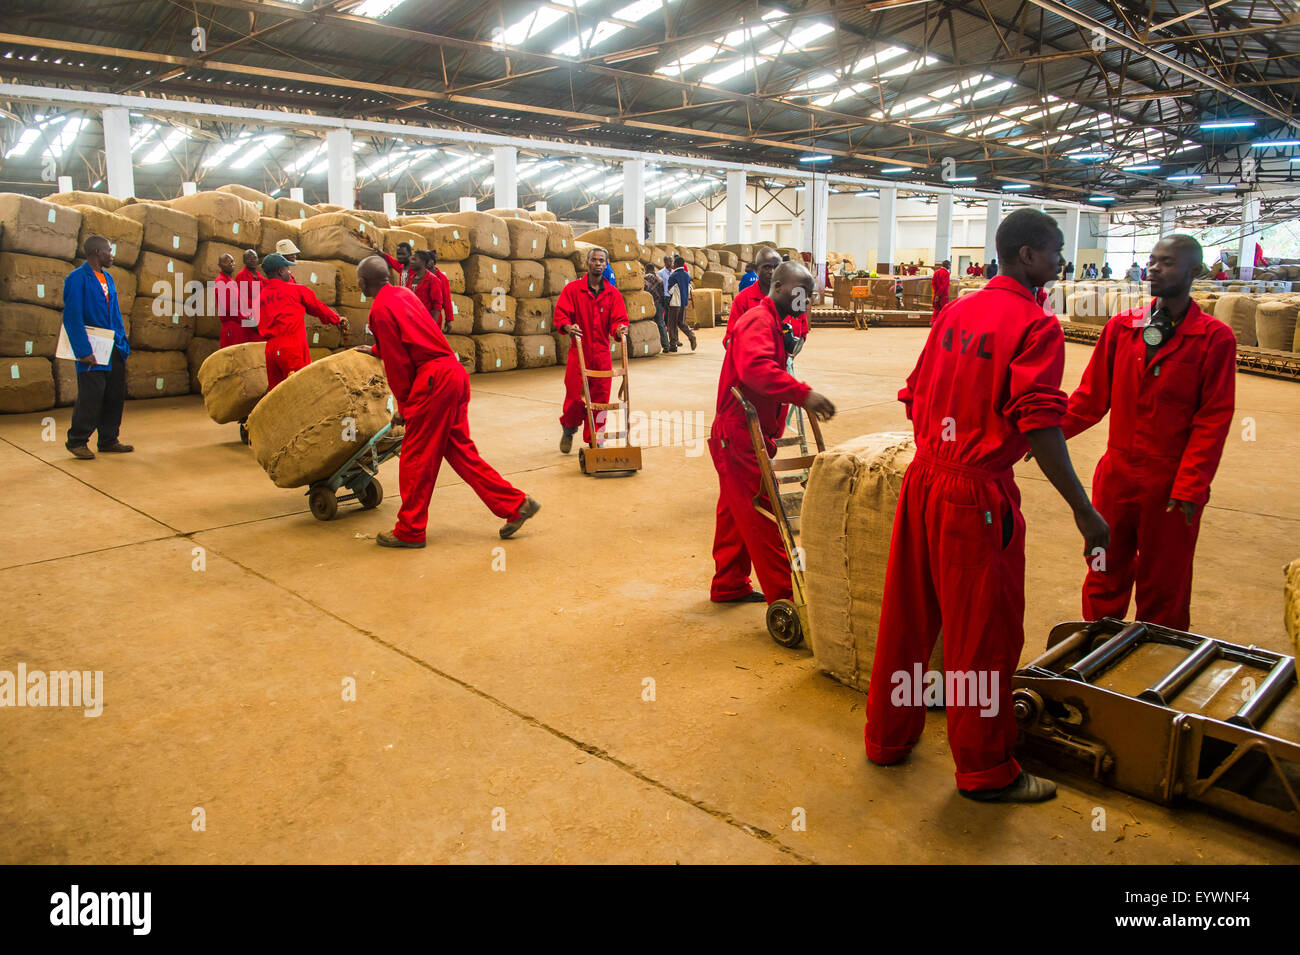 Local workers at a Tobacco auction in Lilongwe, Malawi, Africa - Stock Image